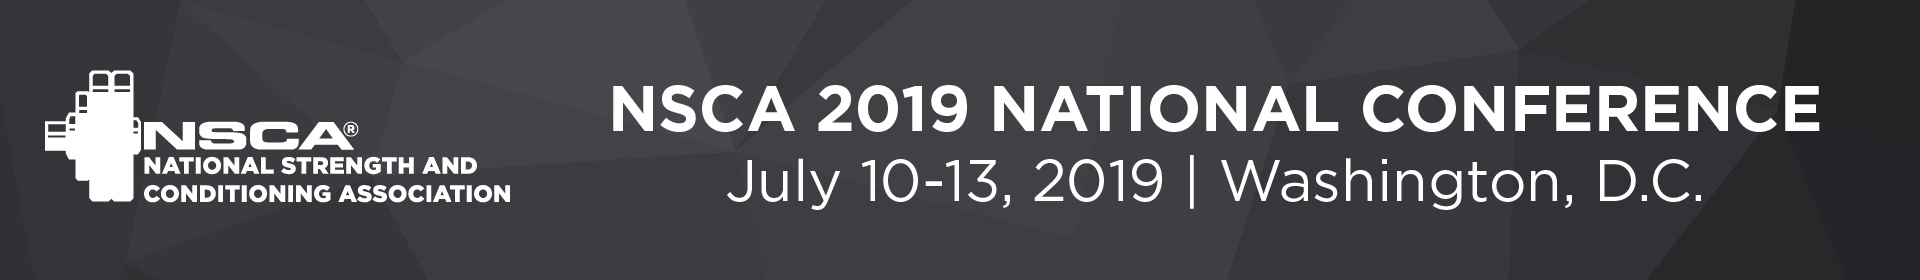 2019 National Conference Event Banner